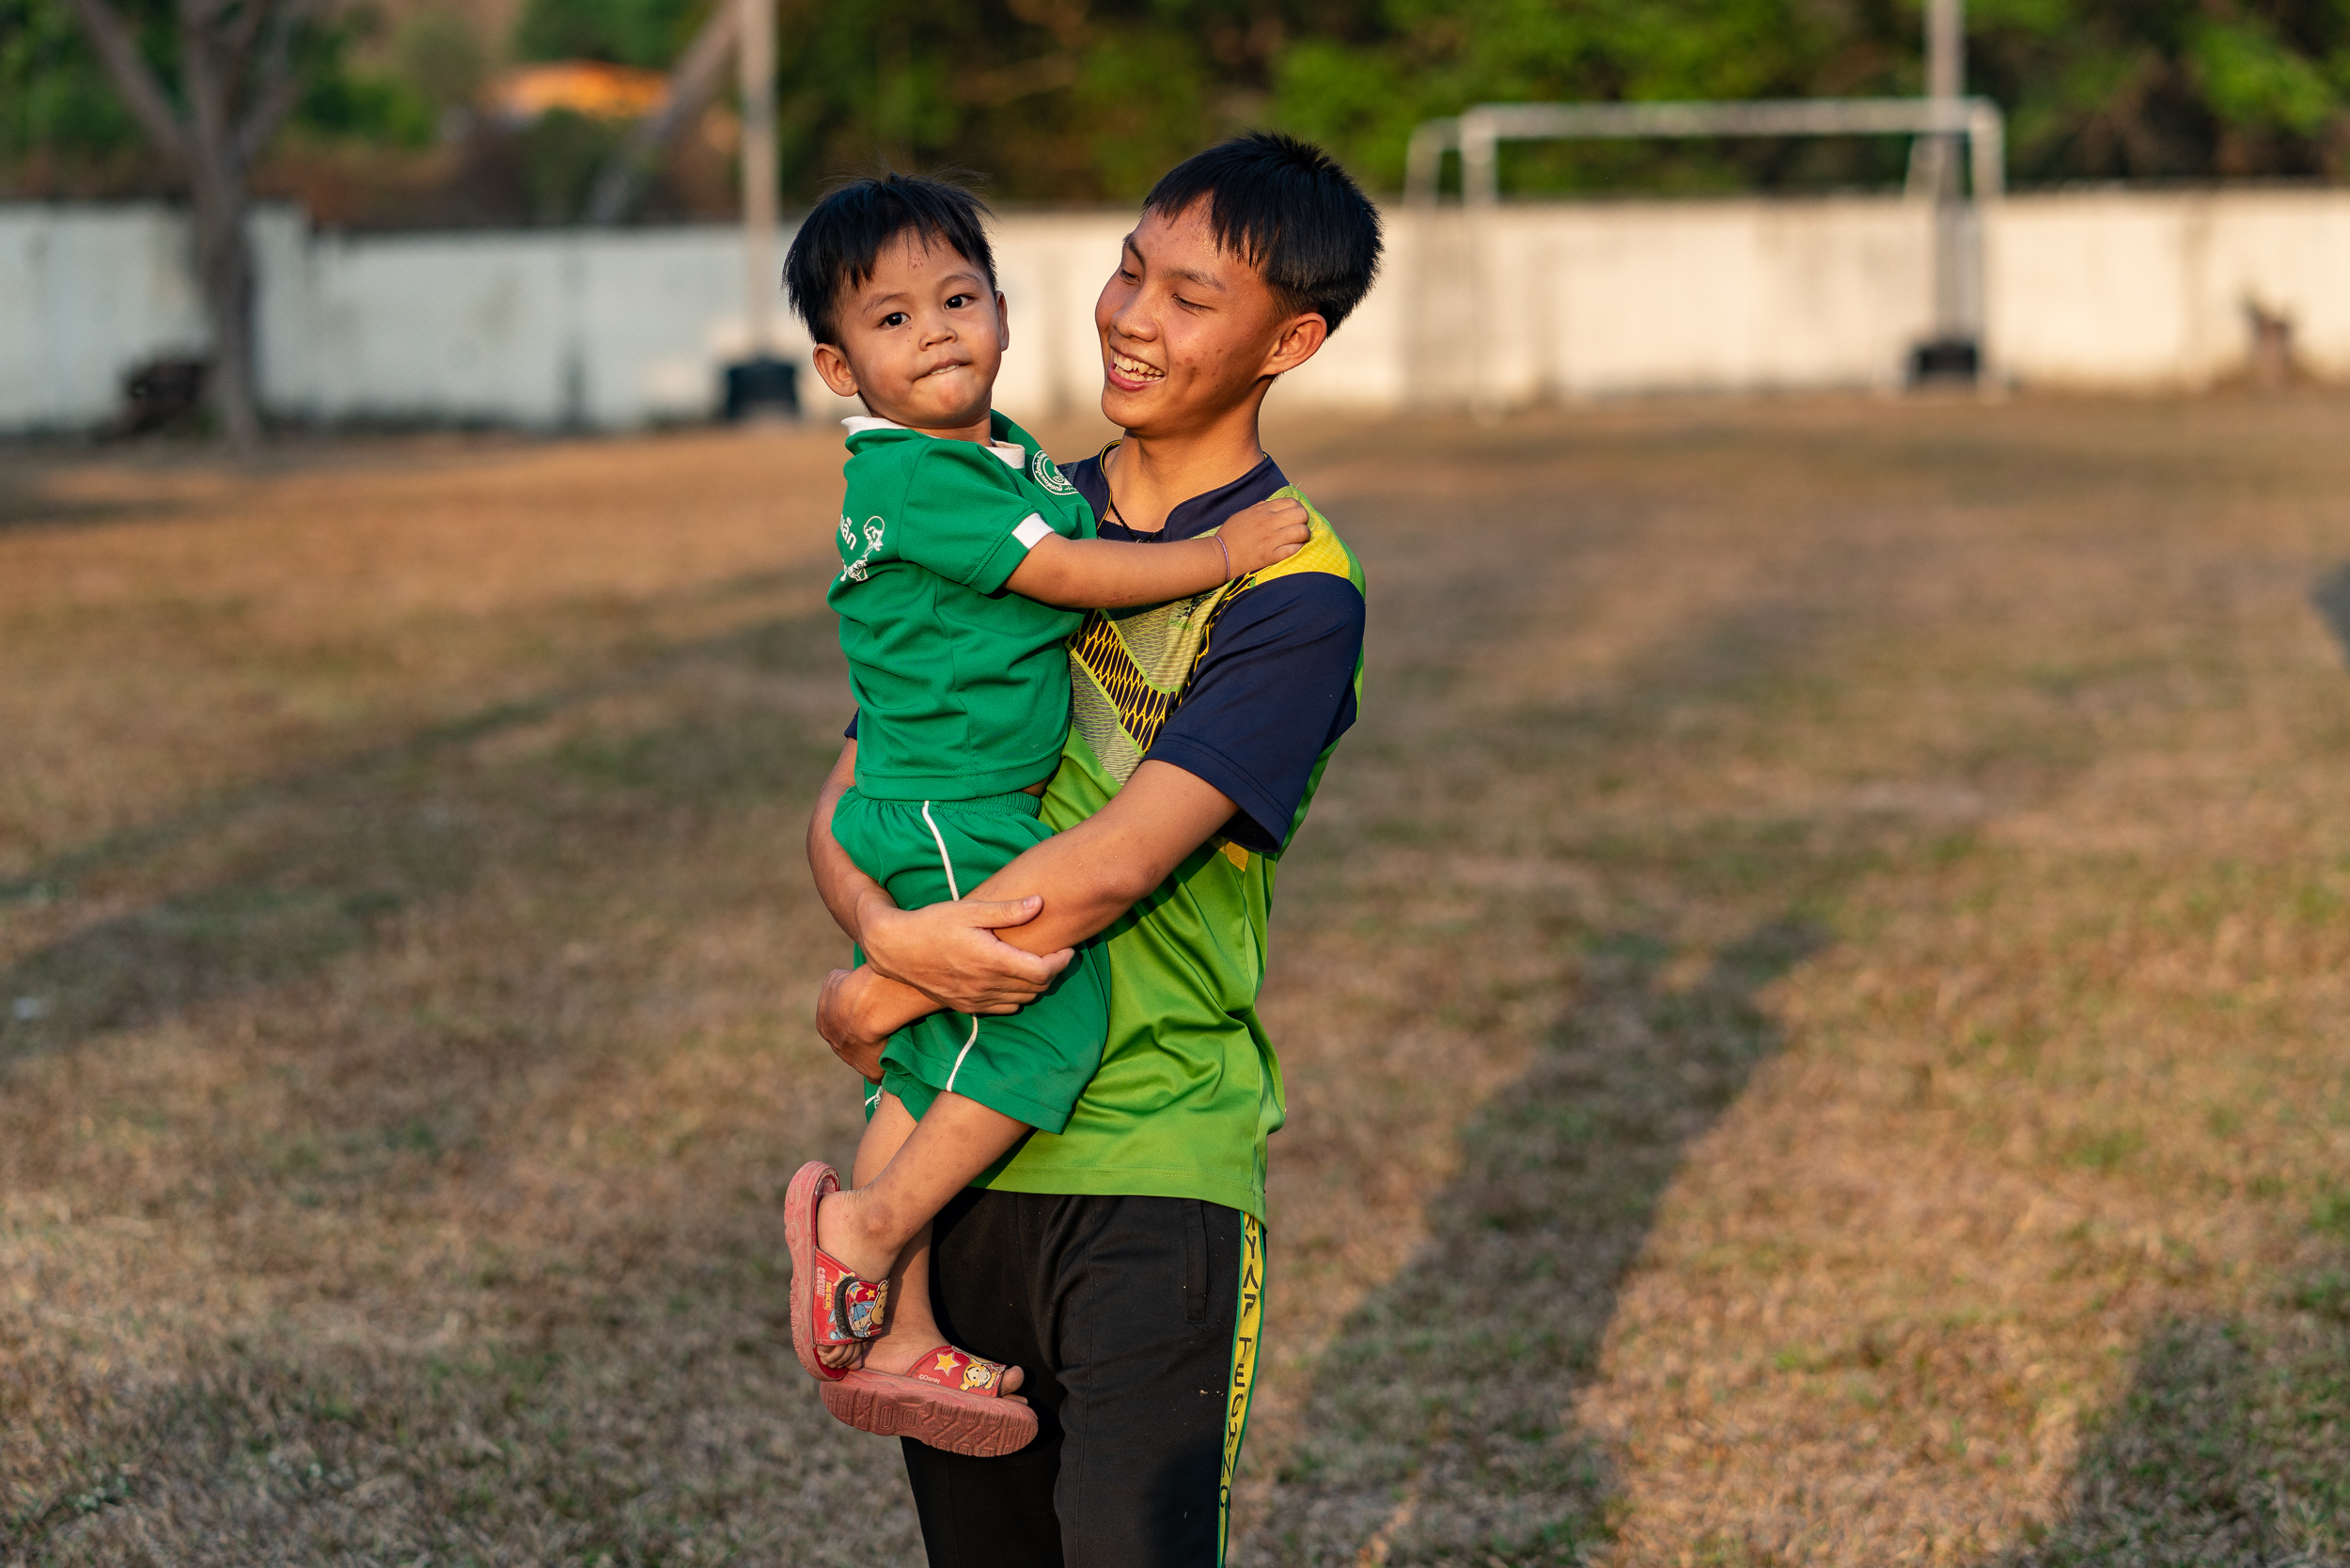 Geoff and Kay Jollay, members of our partner Chets Creek Church, funded the construction of our new soccer field on our Doi Saket, Thailand campus.